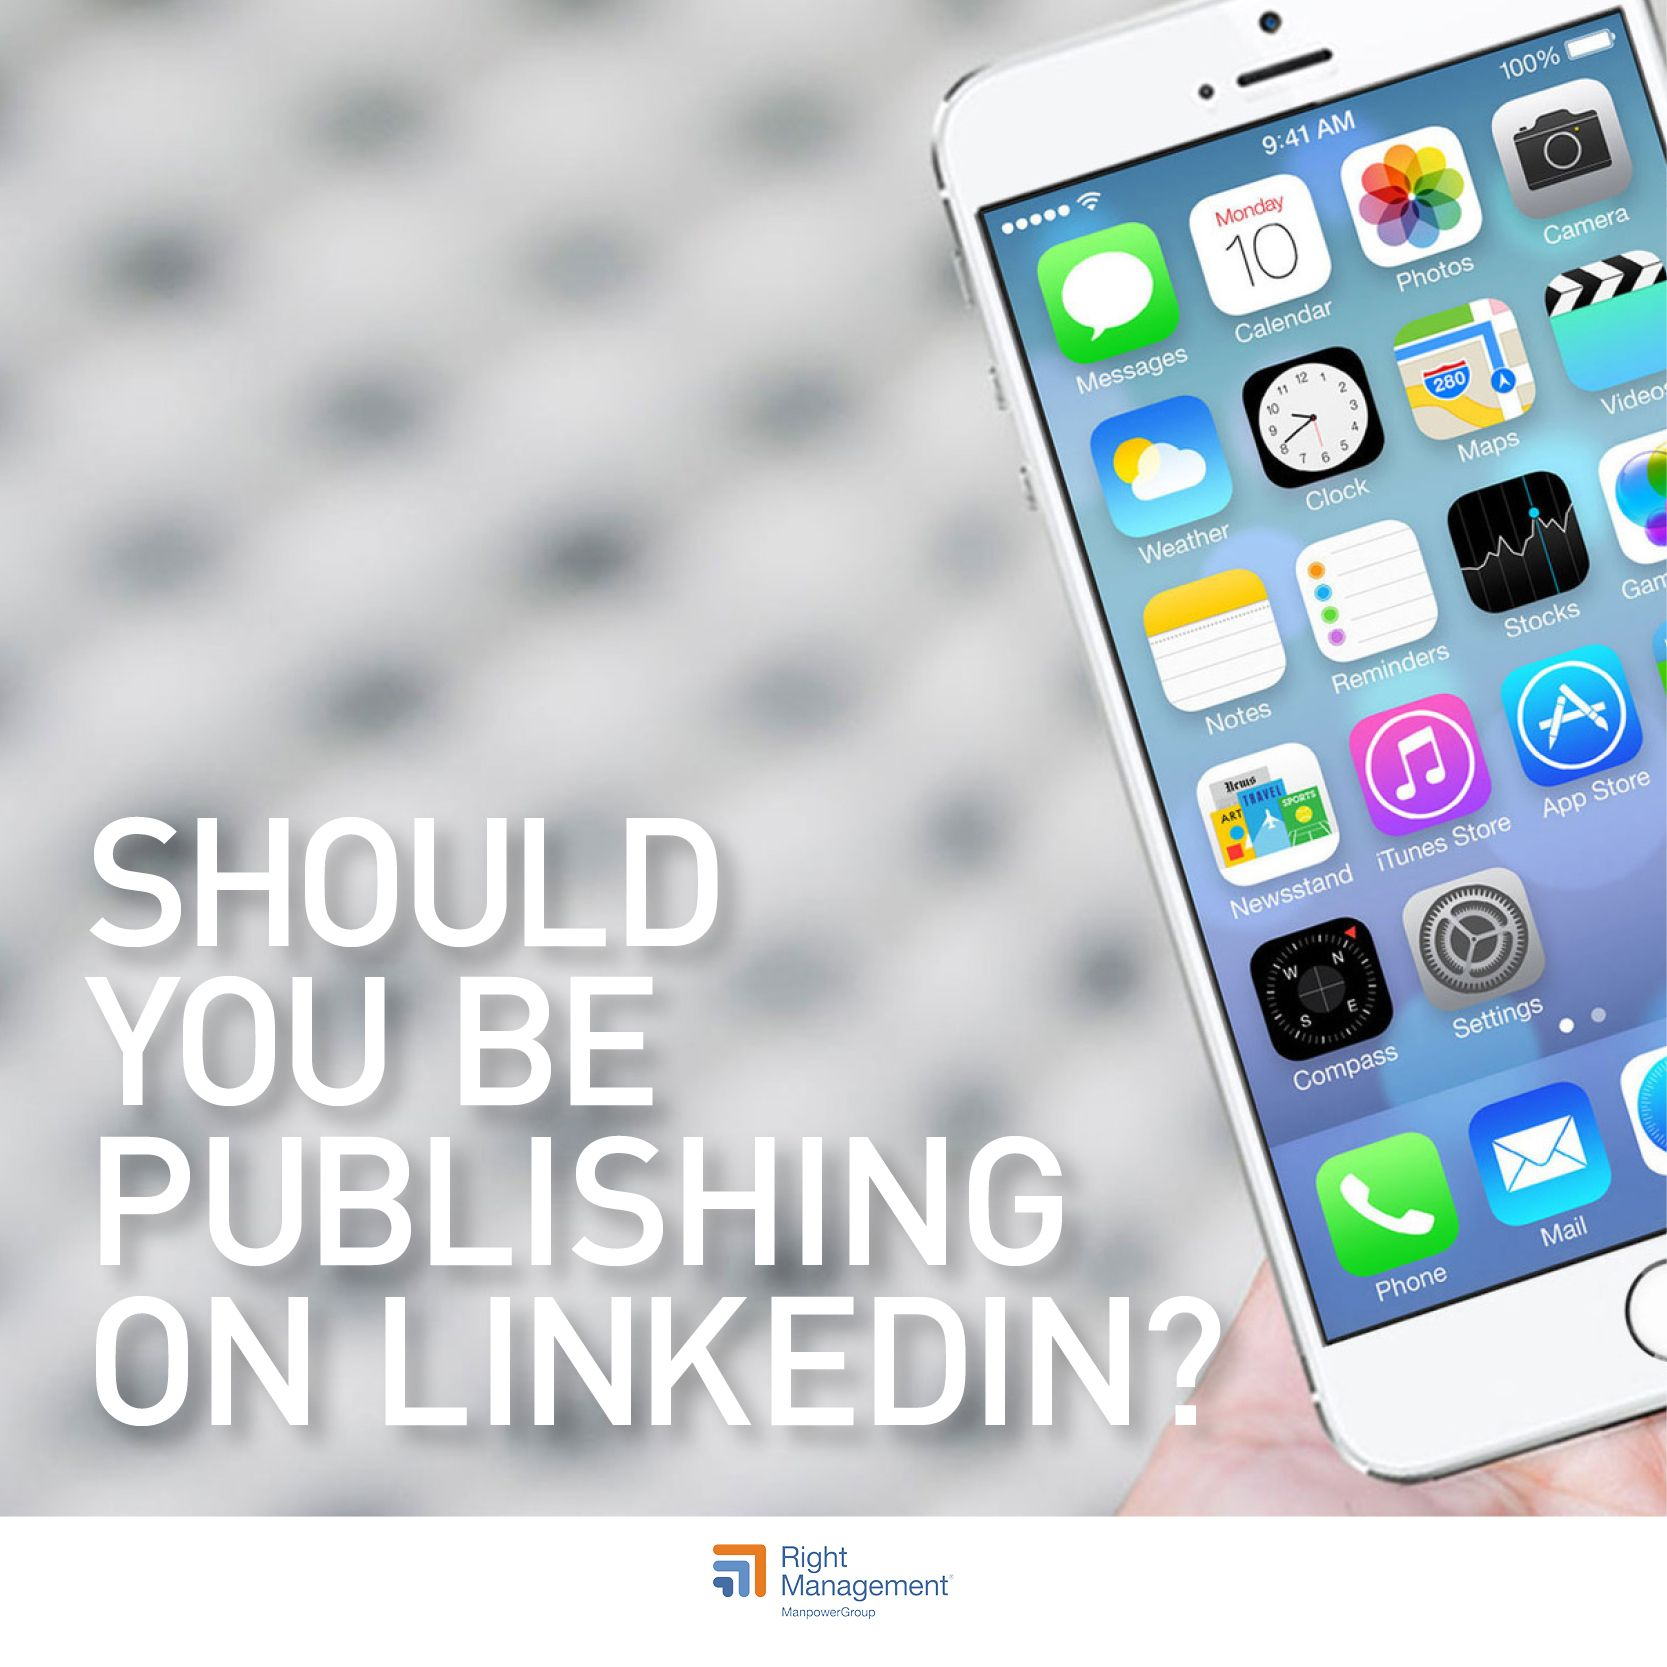 6 Reasons Why You Should Be Publishing On LinkedIn